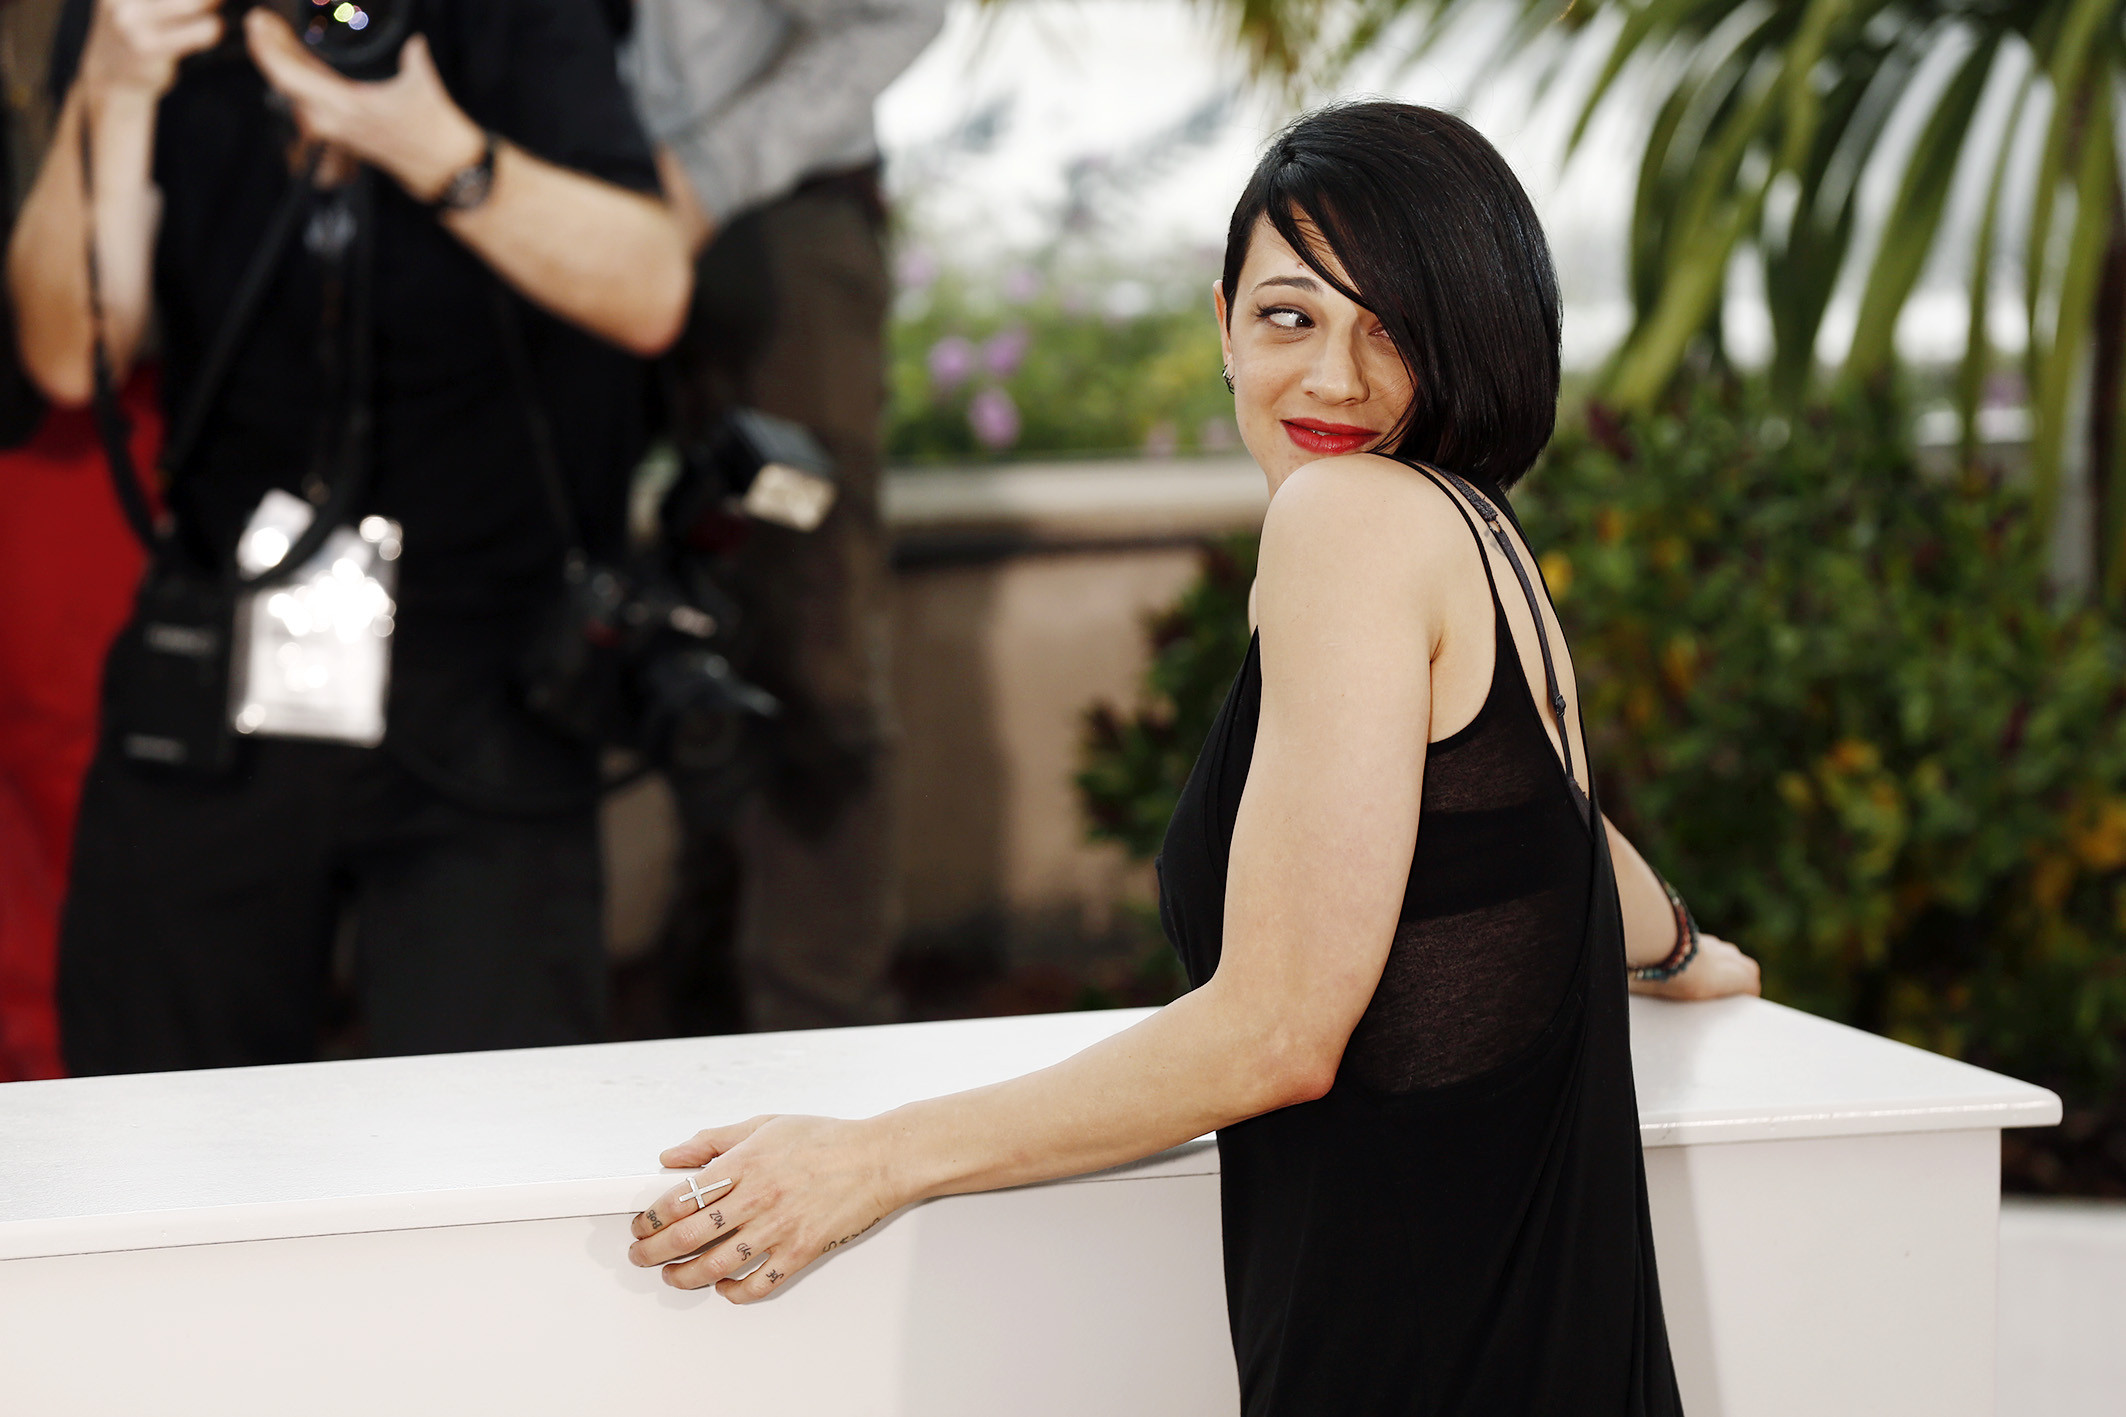 Asia Argento at the 67th Annual Cannes Film Festival. When: 22 May 2014 Credit: KIKA/WENN.com